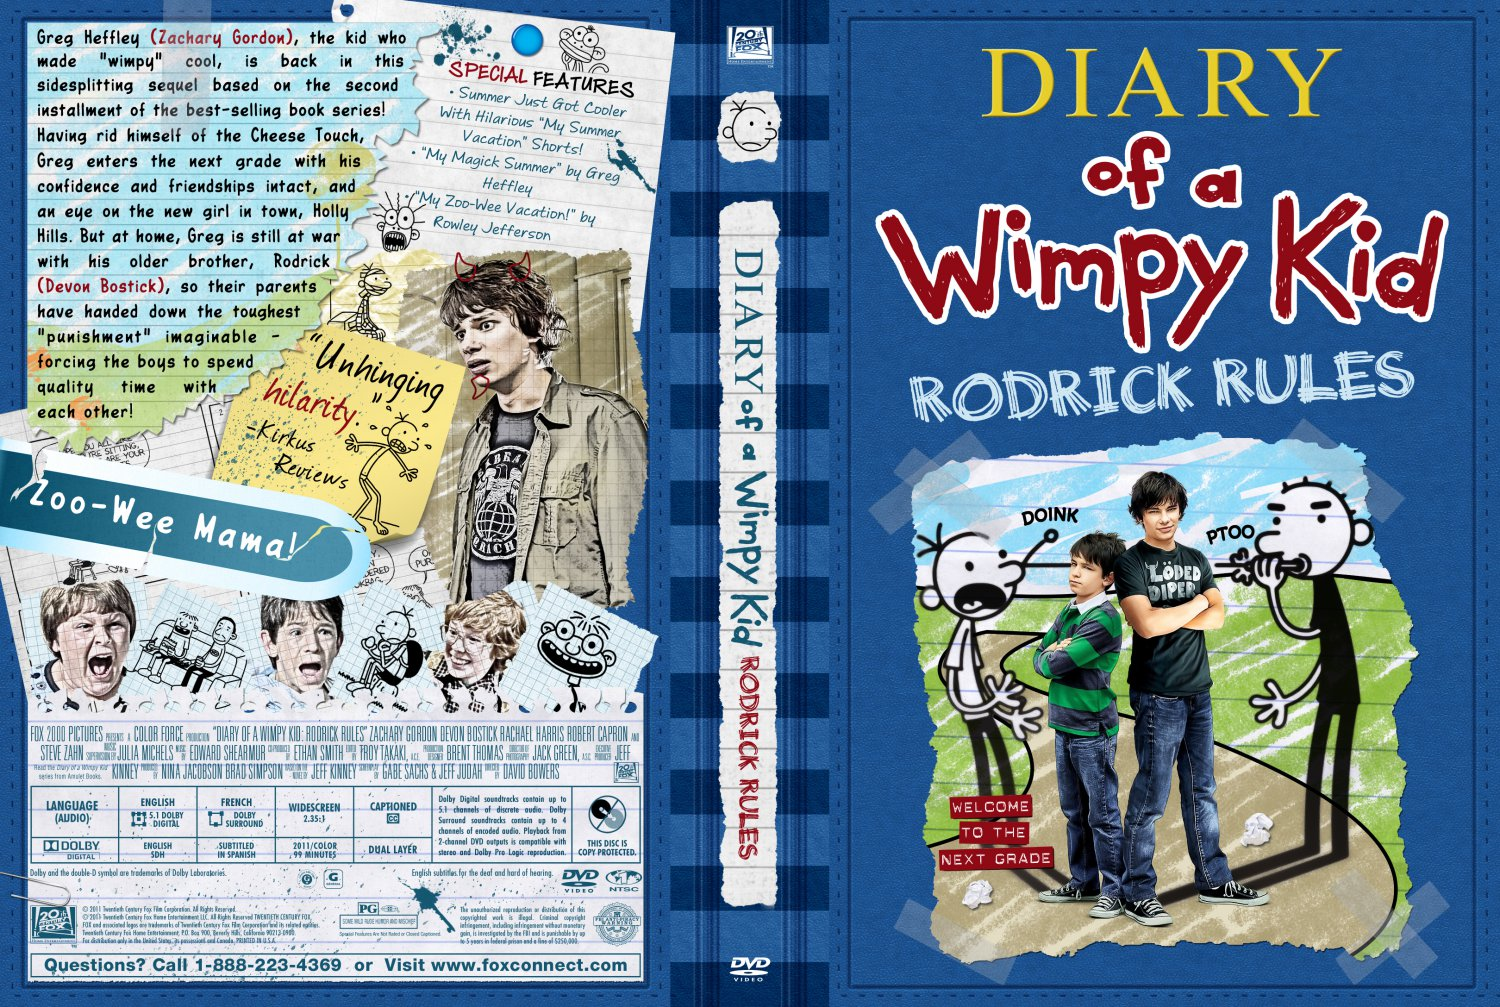 Diary Of A Wimpy Kid Rodrick Rules Wallpapers Movie Hq Diary Of A Wimpy Kid Rodrick Rules Pictures 4k Wallpapers 2019